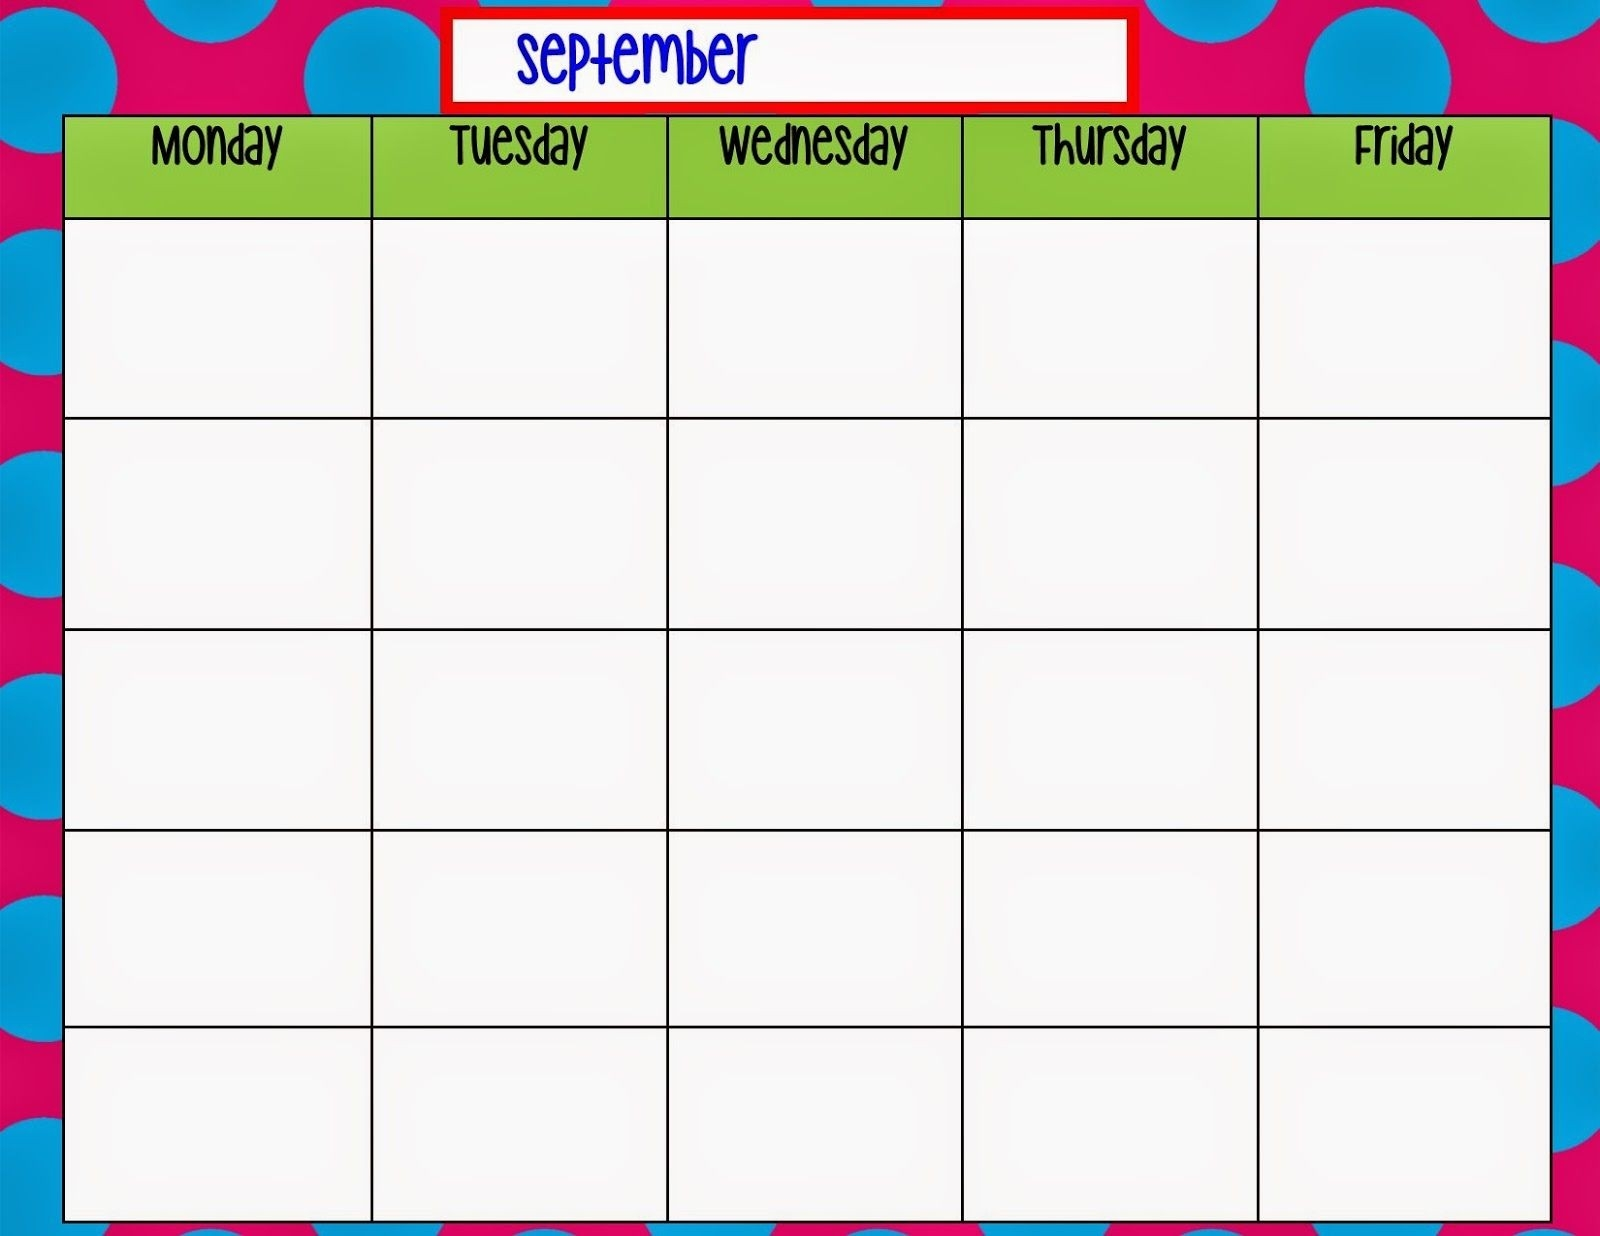 Monday Through Friday Calendar Template | Weekly Calendar-Monthly Calendar Monday To Friday